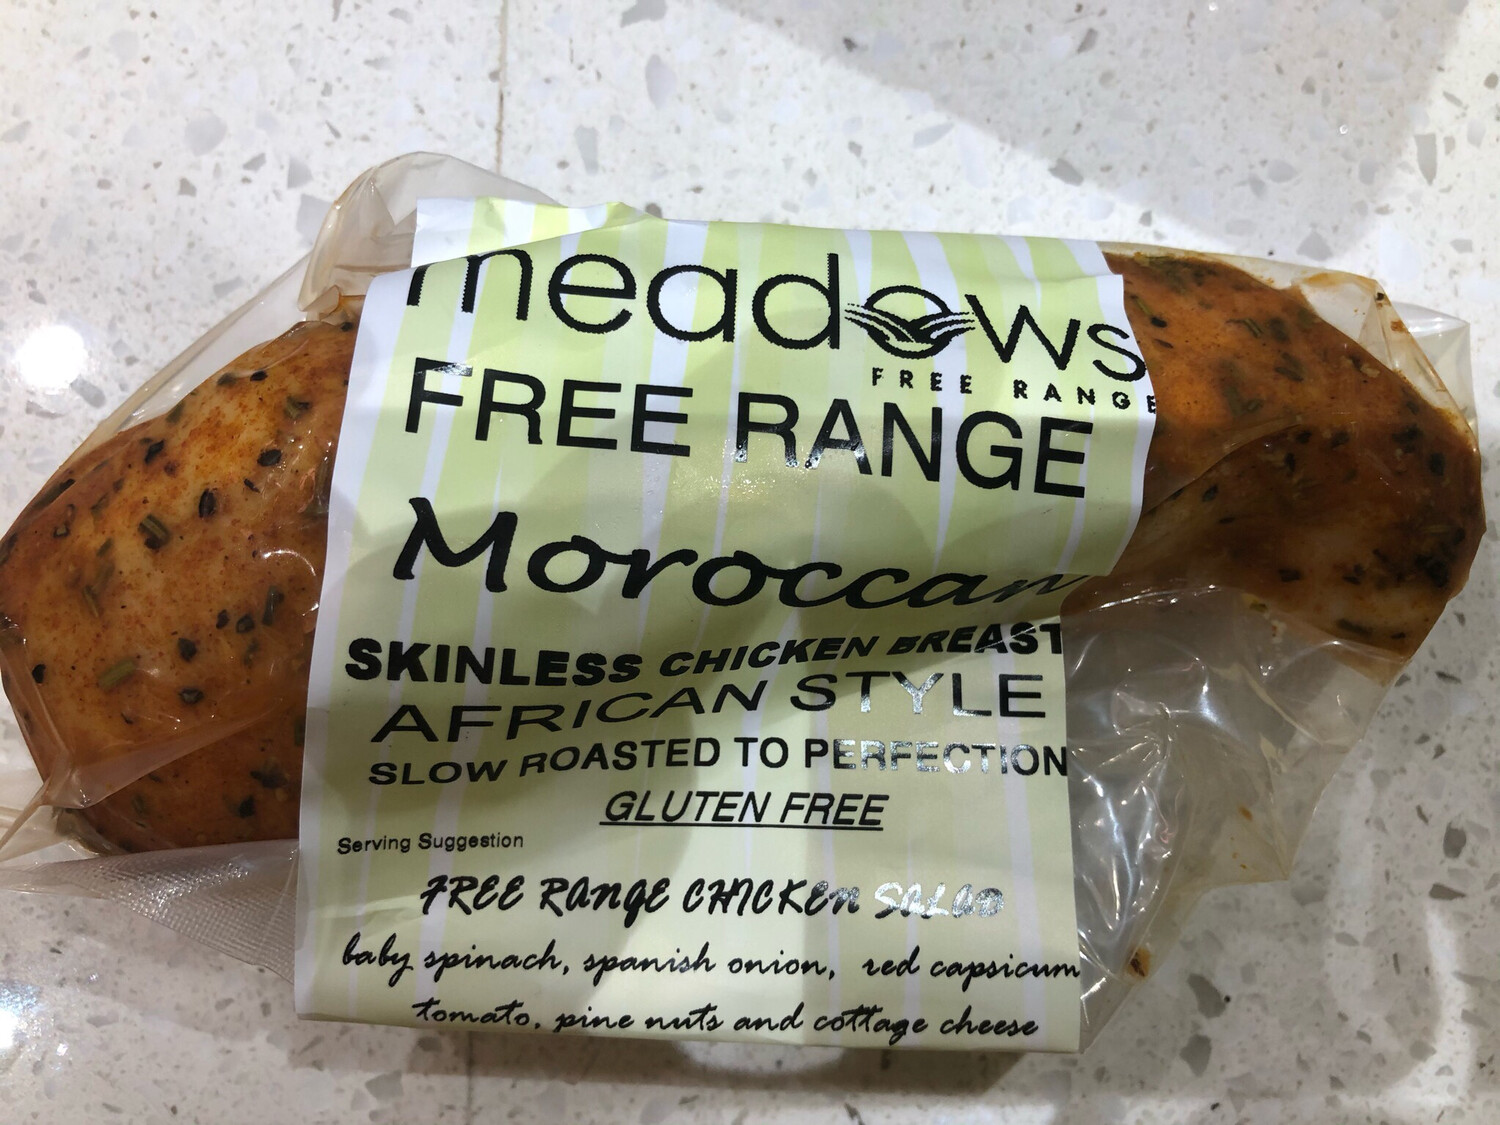 Free Range Moroccan Skinless Chicken Breast